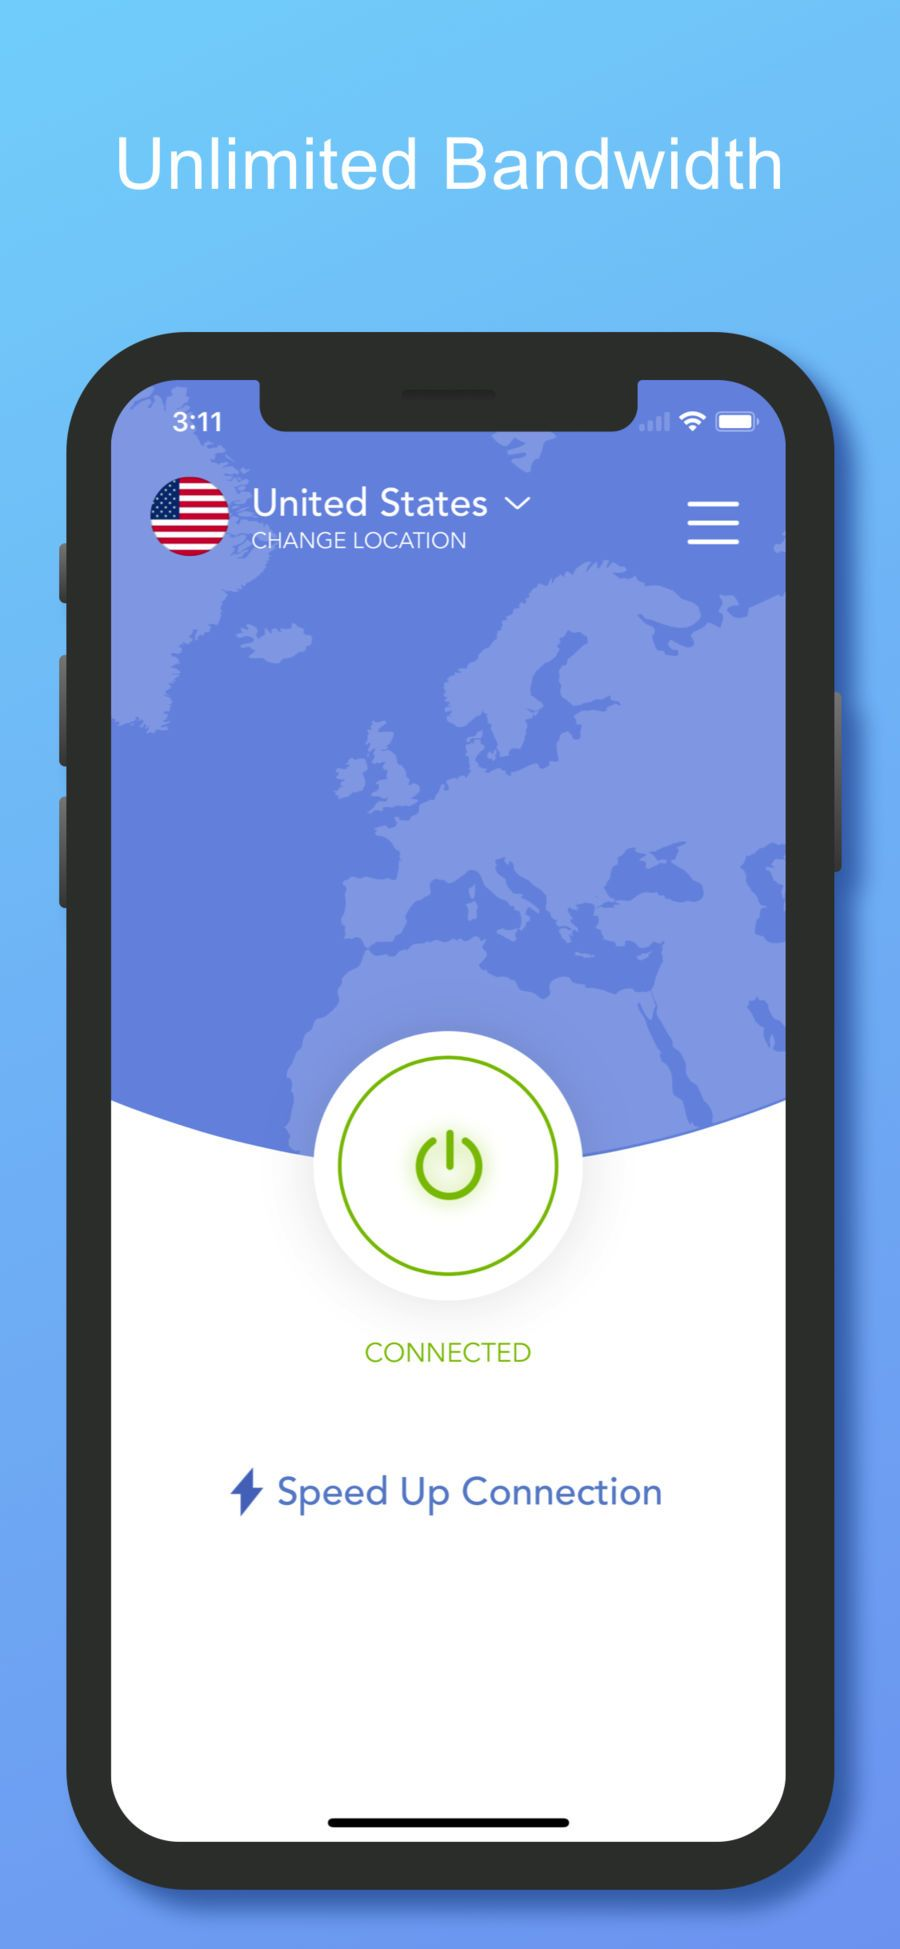 3c4ea47ed8e1e4d2821fe4d47b902dde - How To Change Location On Iphone Vpn